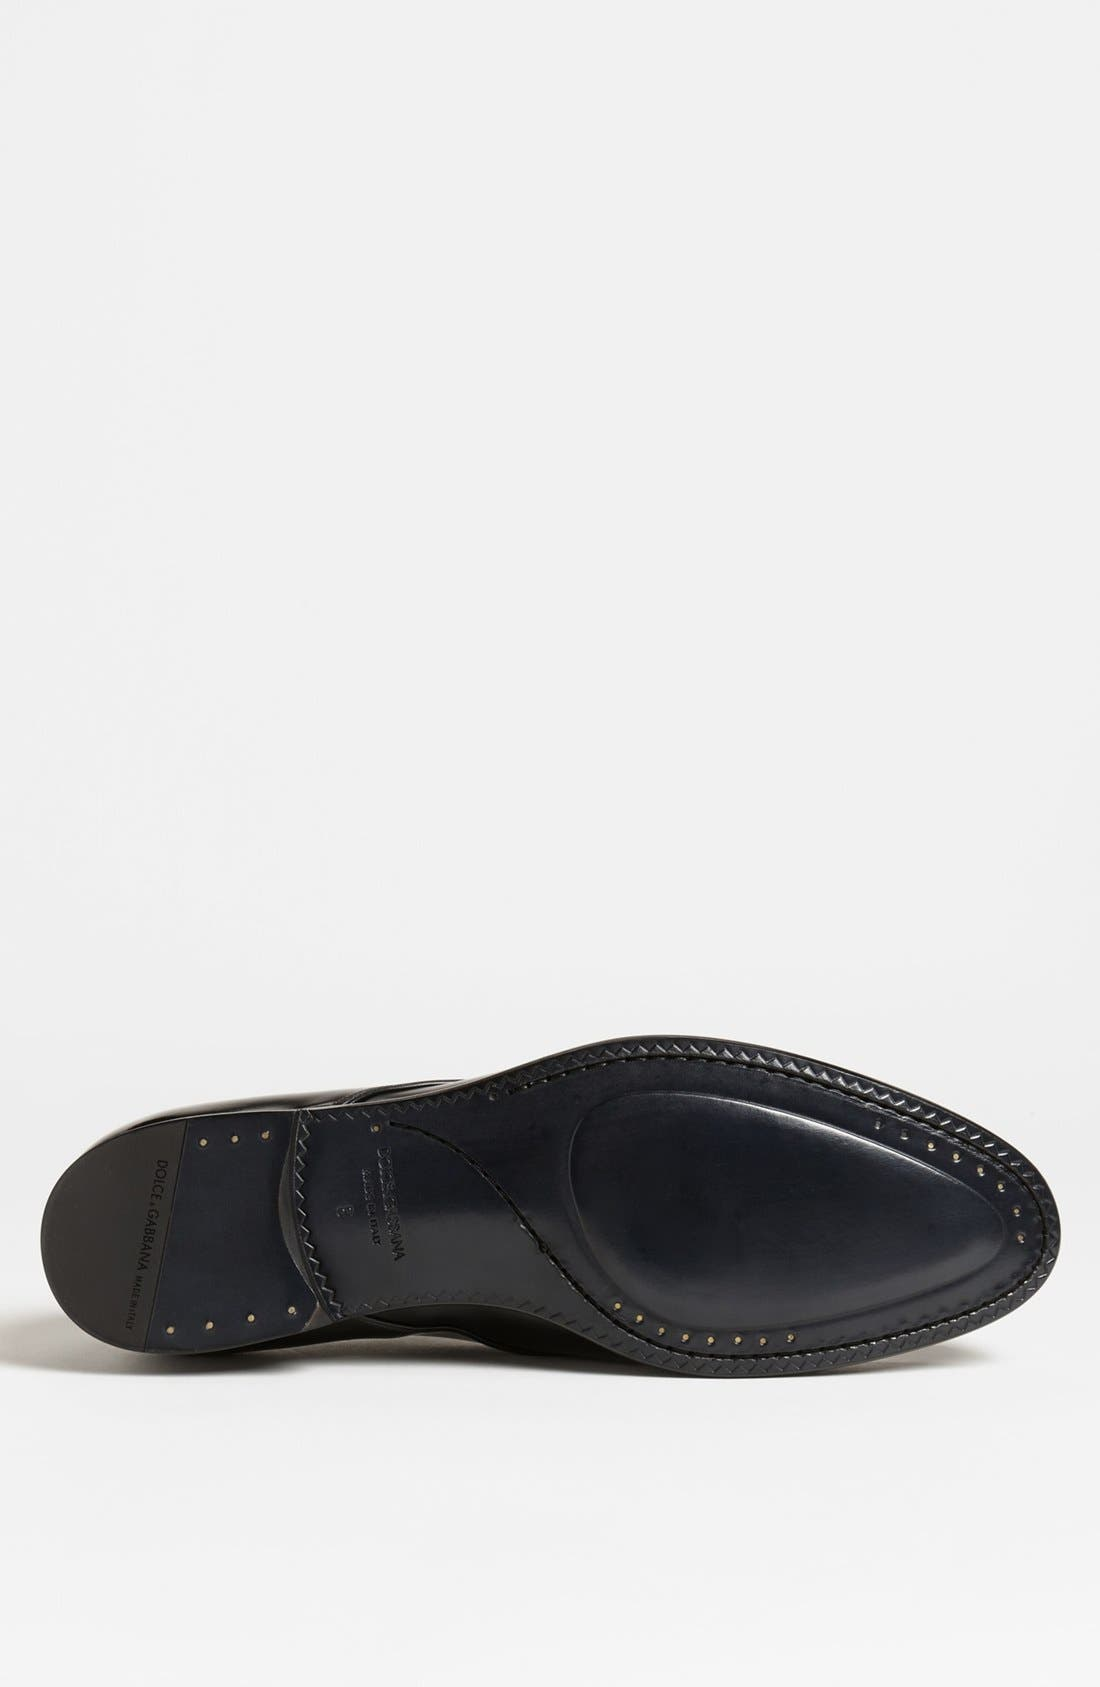 Alternate Image 4  - Dolce&Gabbana 'Napoli' Plain Toe Derby